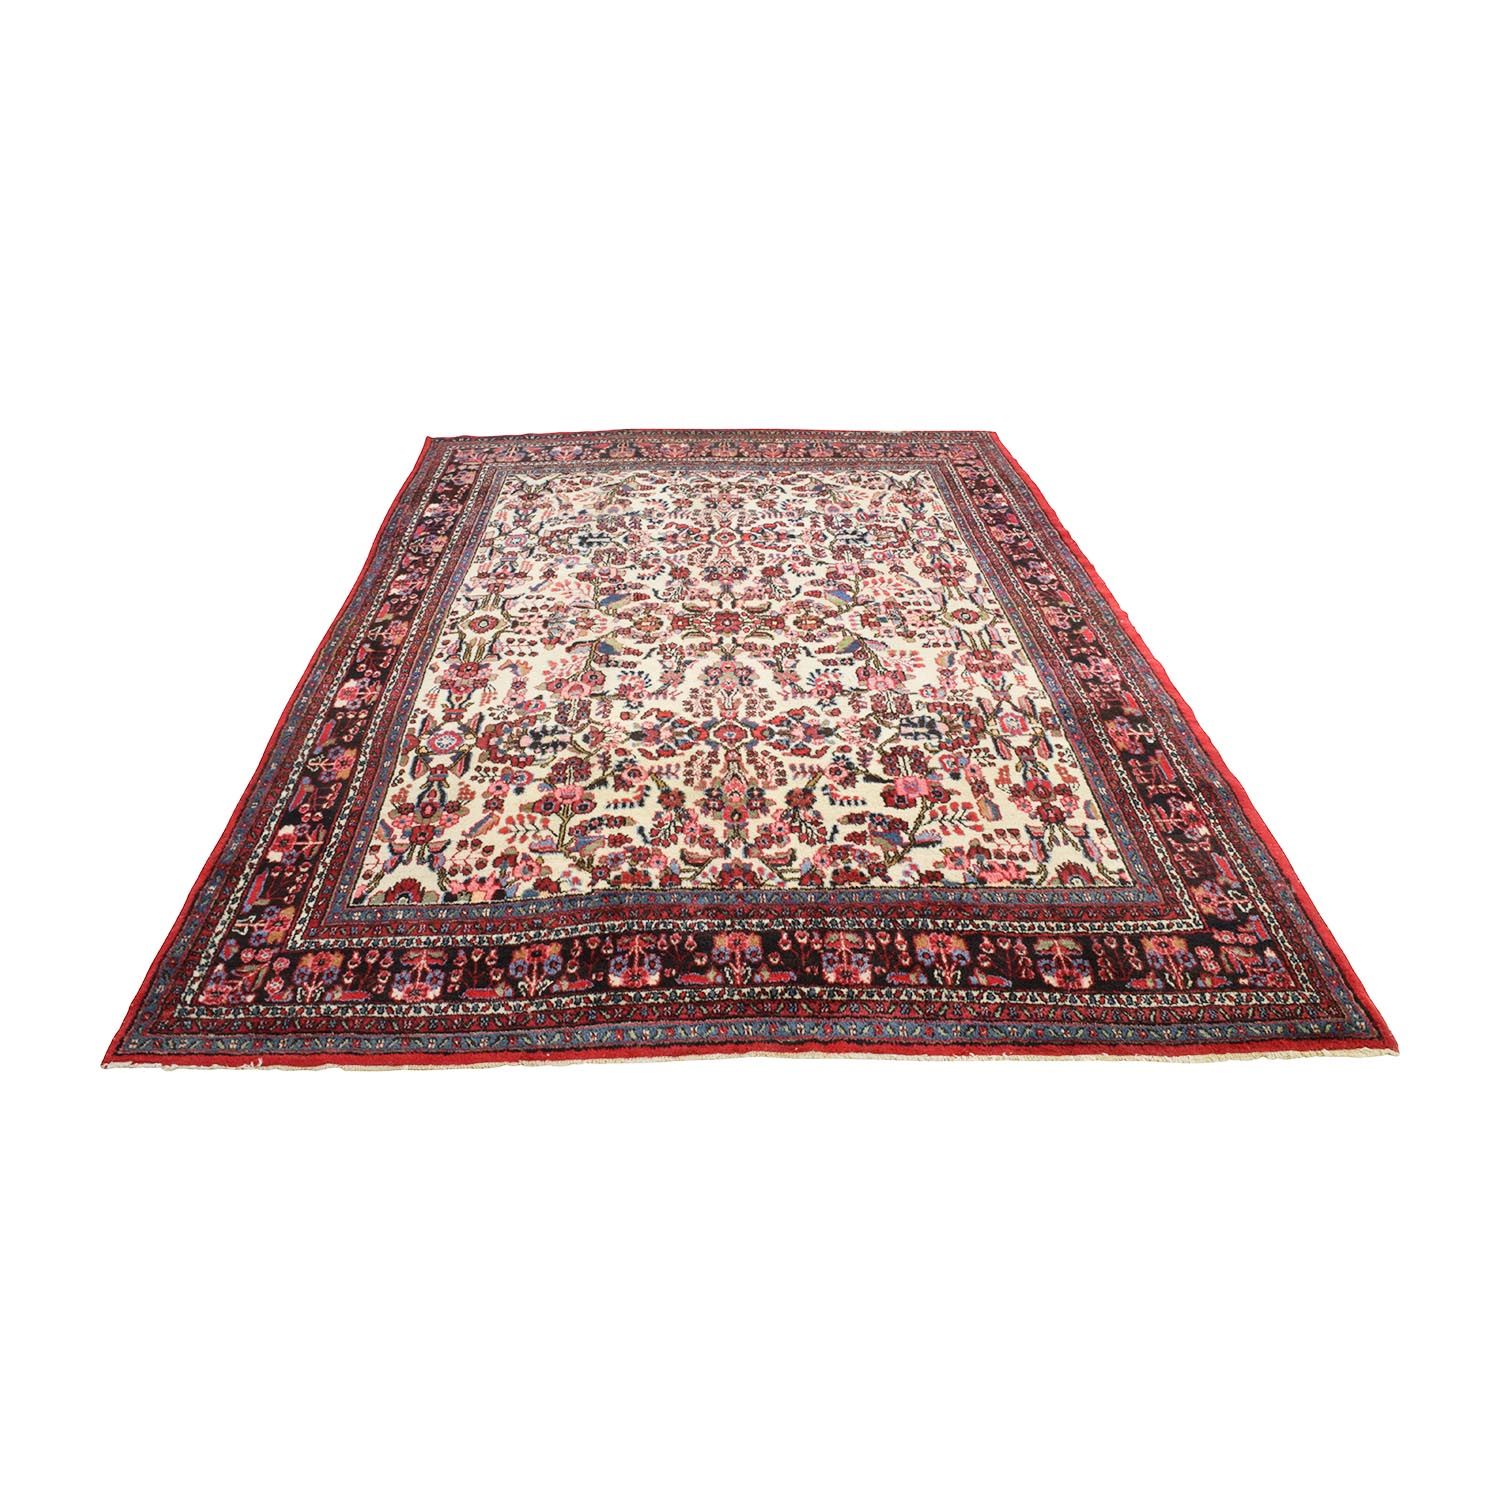 Handmade Vintage Red Persian Rug nj